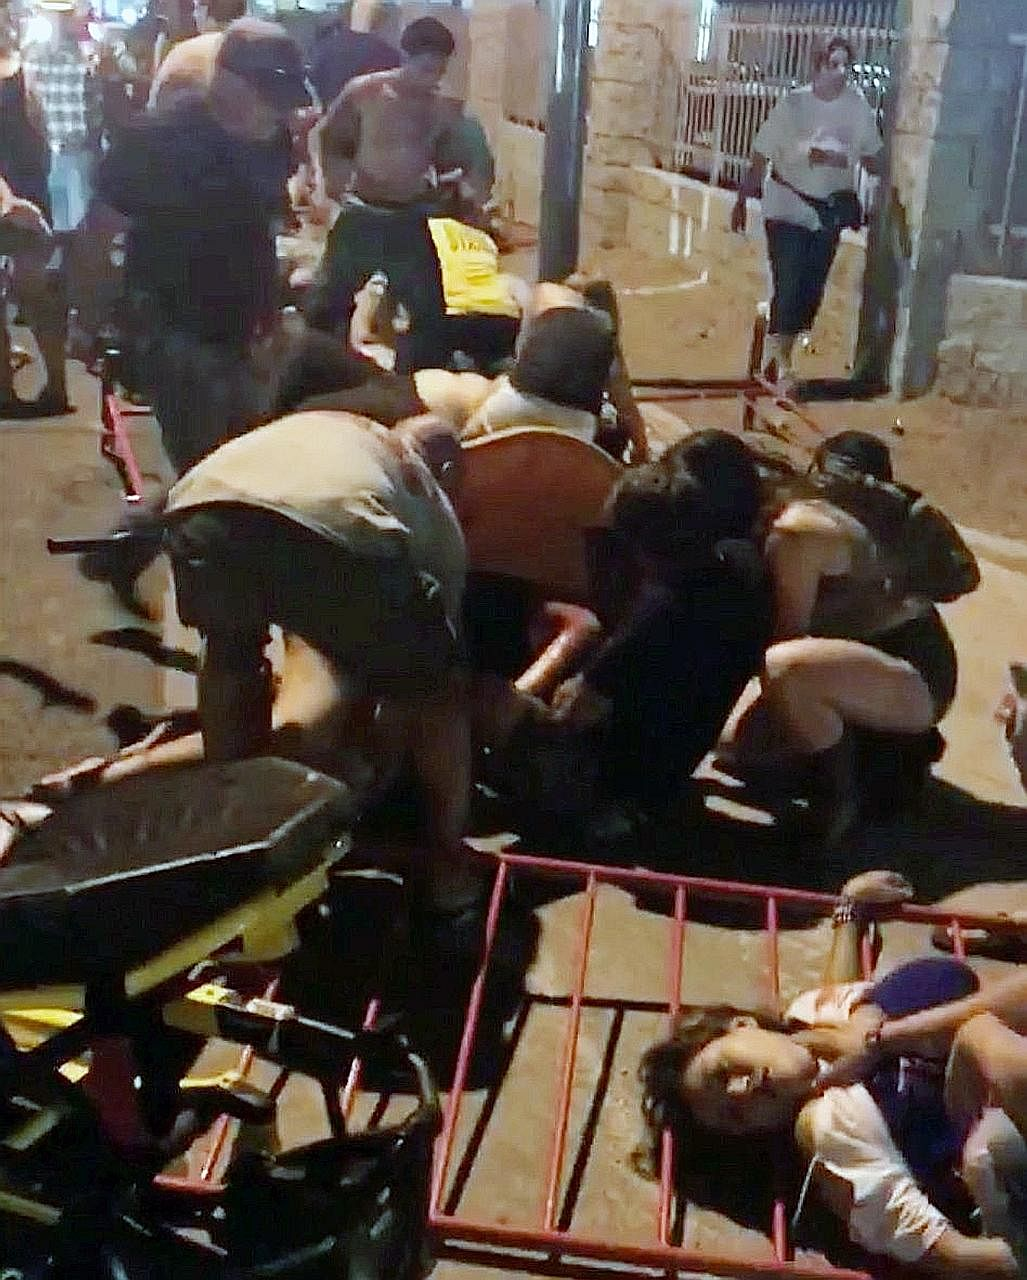 People giving help to those who had been hurt when the shooting began, at the Route 91 Harvest Music Festival in Las Vegas. Some of them became on-the-spot medics, using metal crowd-control stanchions as stretchers, while others turned their private